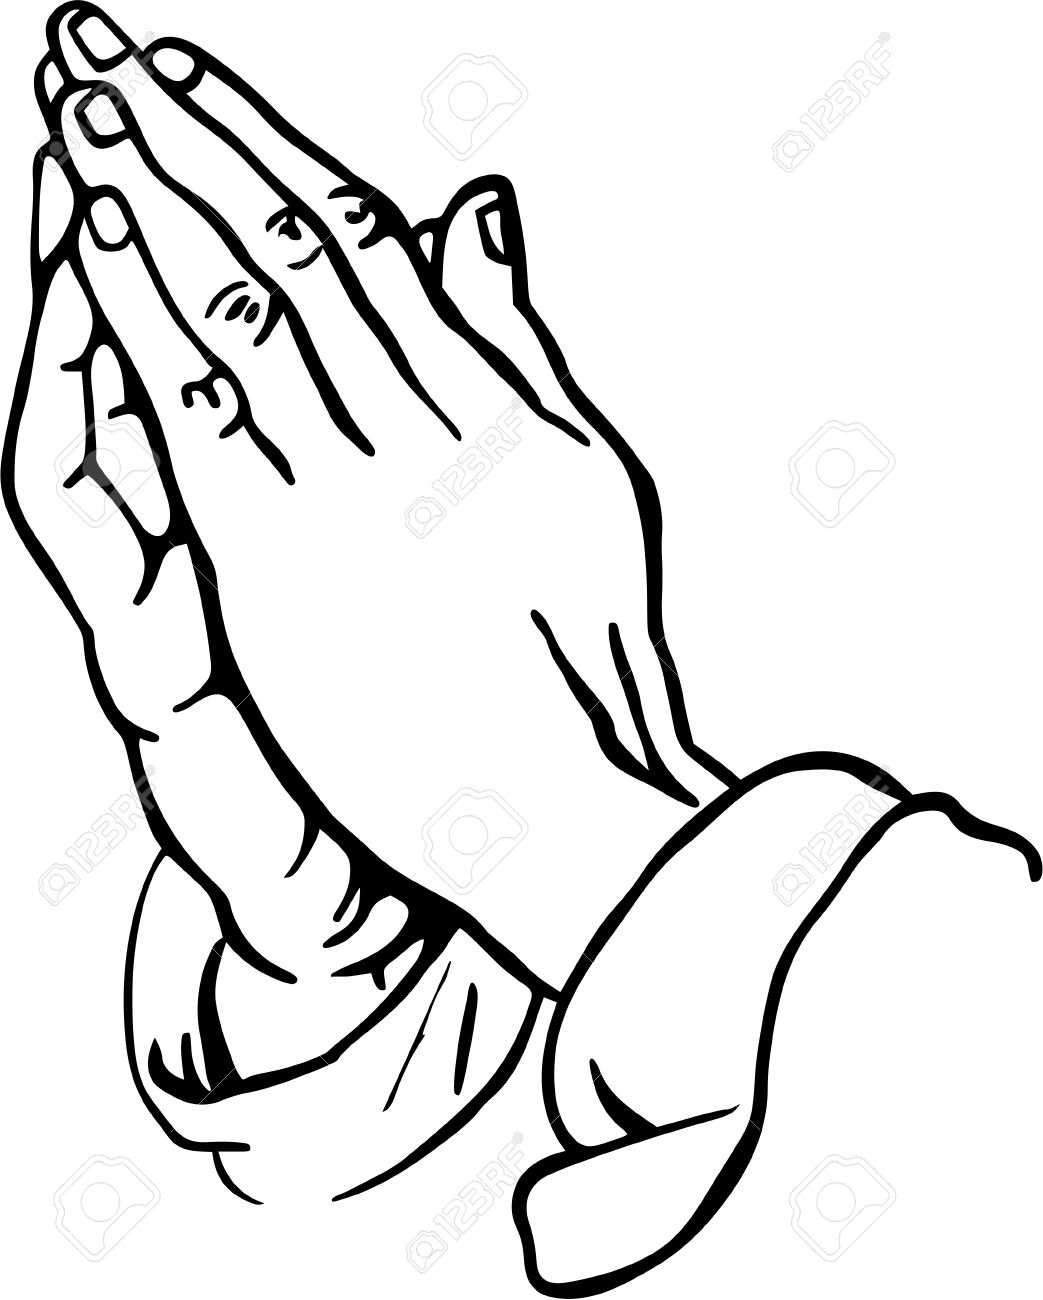 Praying Hand Photos